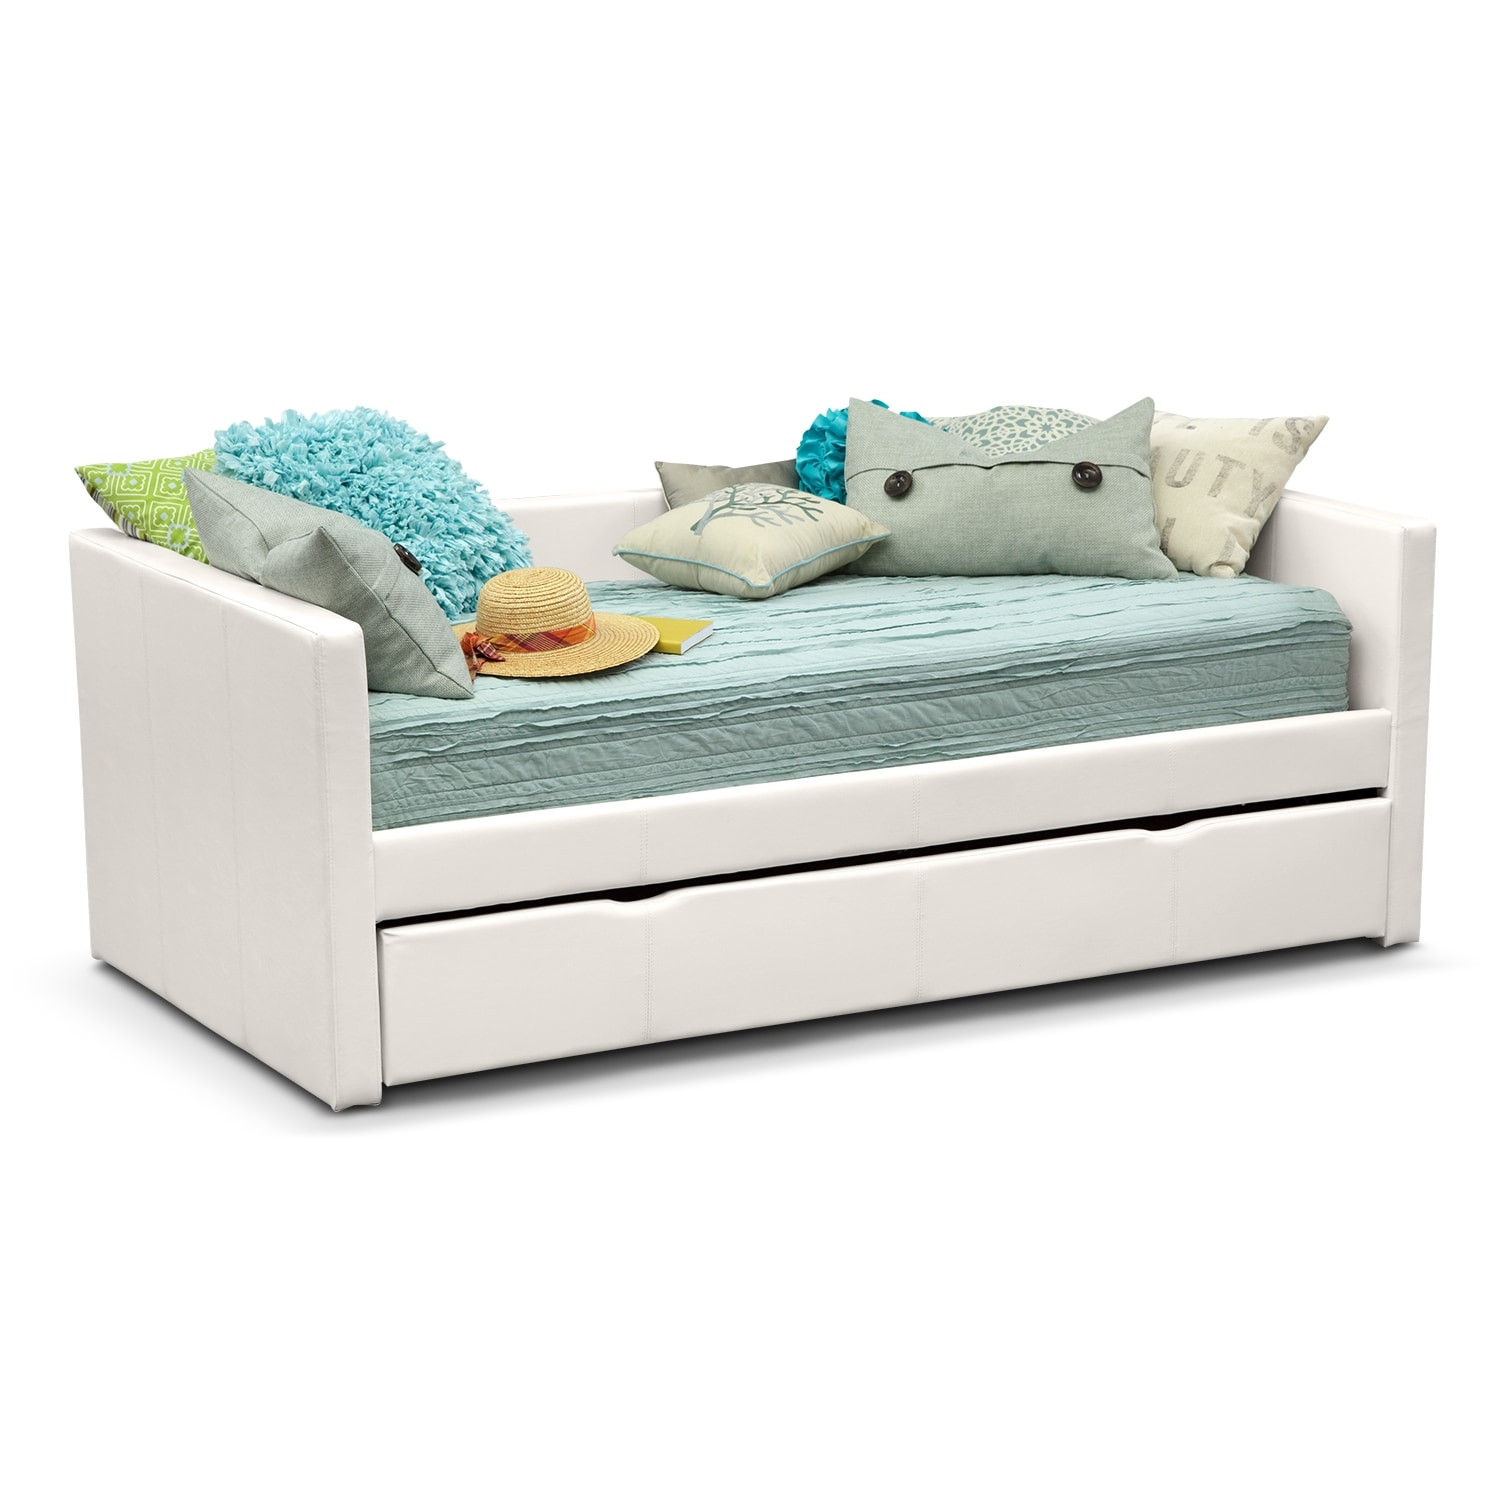 Carey white twin daybed with trundle value city furniture for Beds with trundle